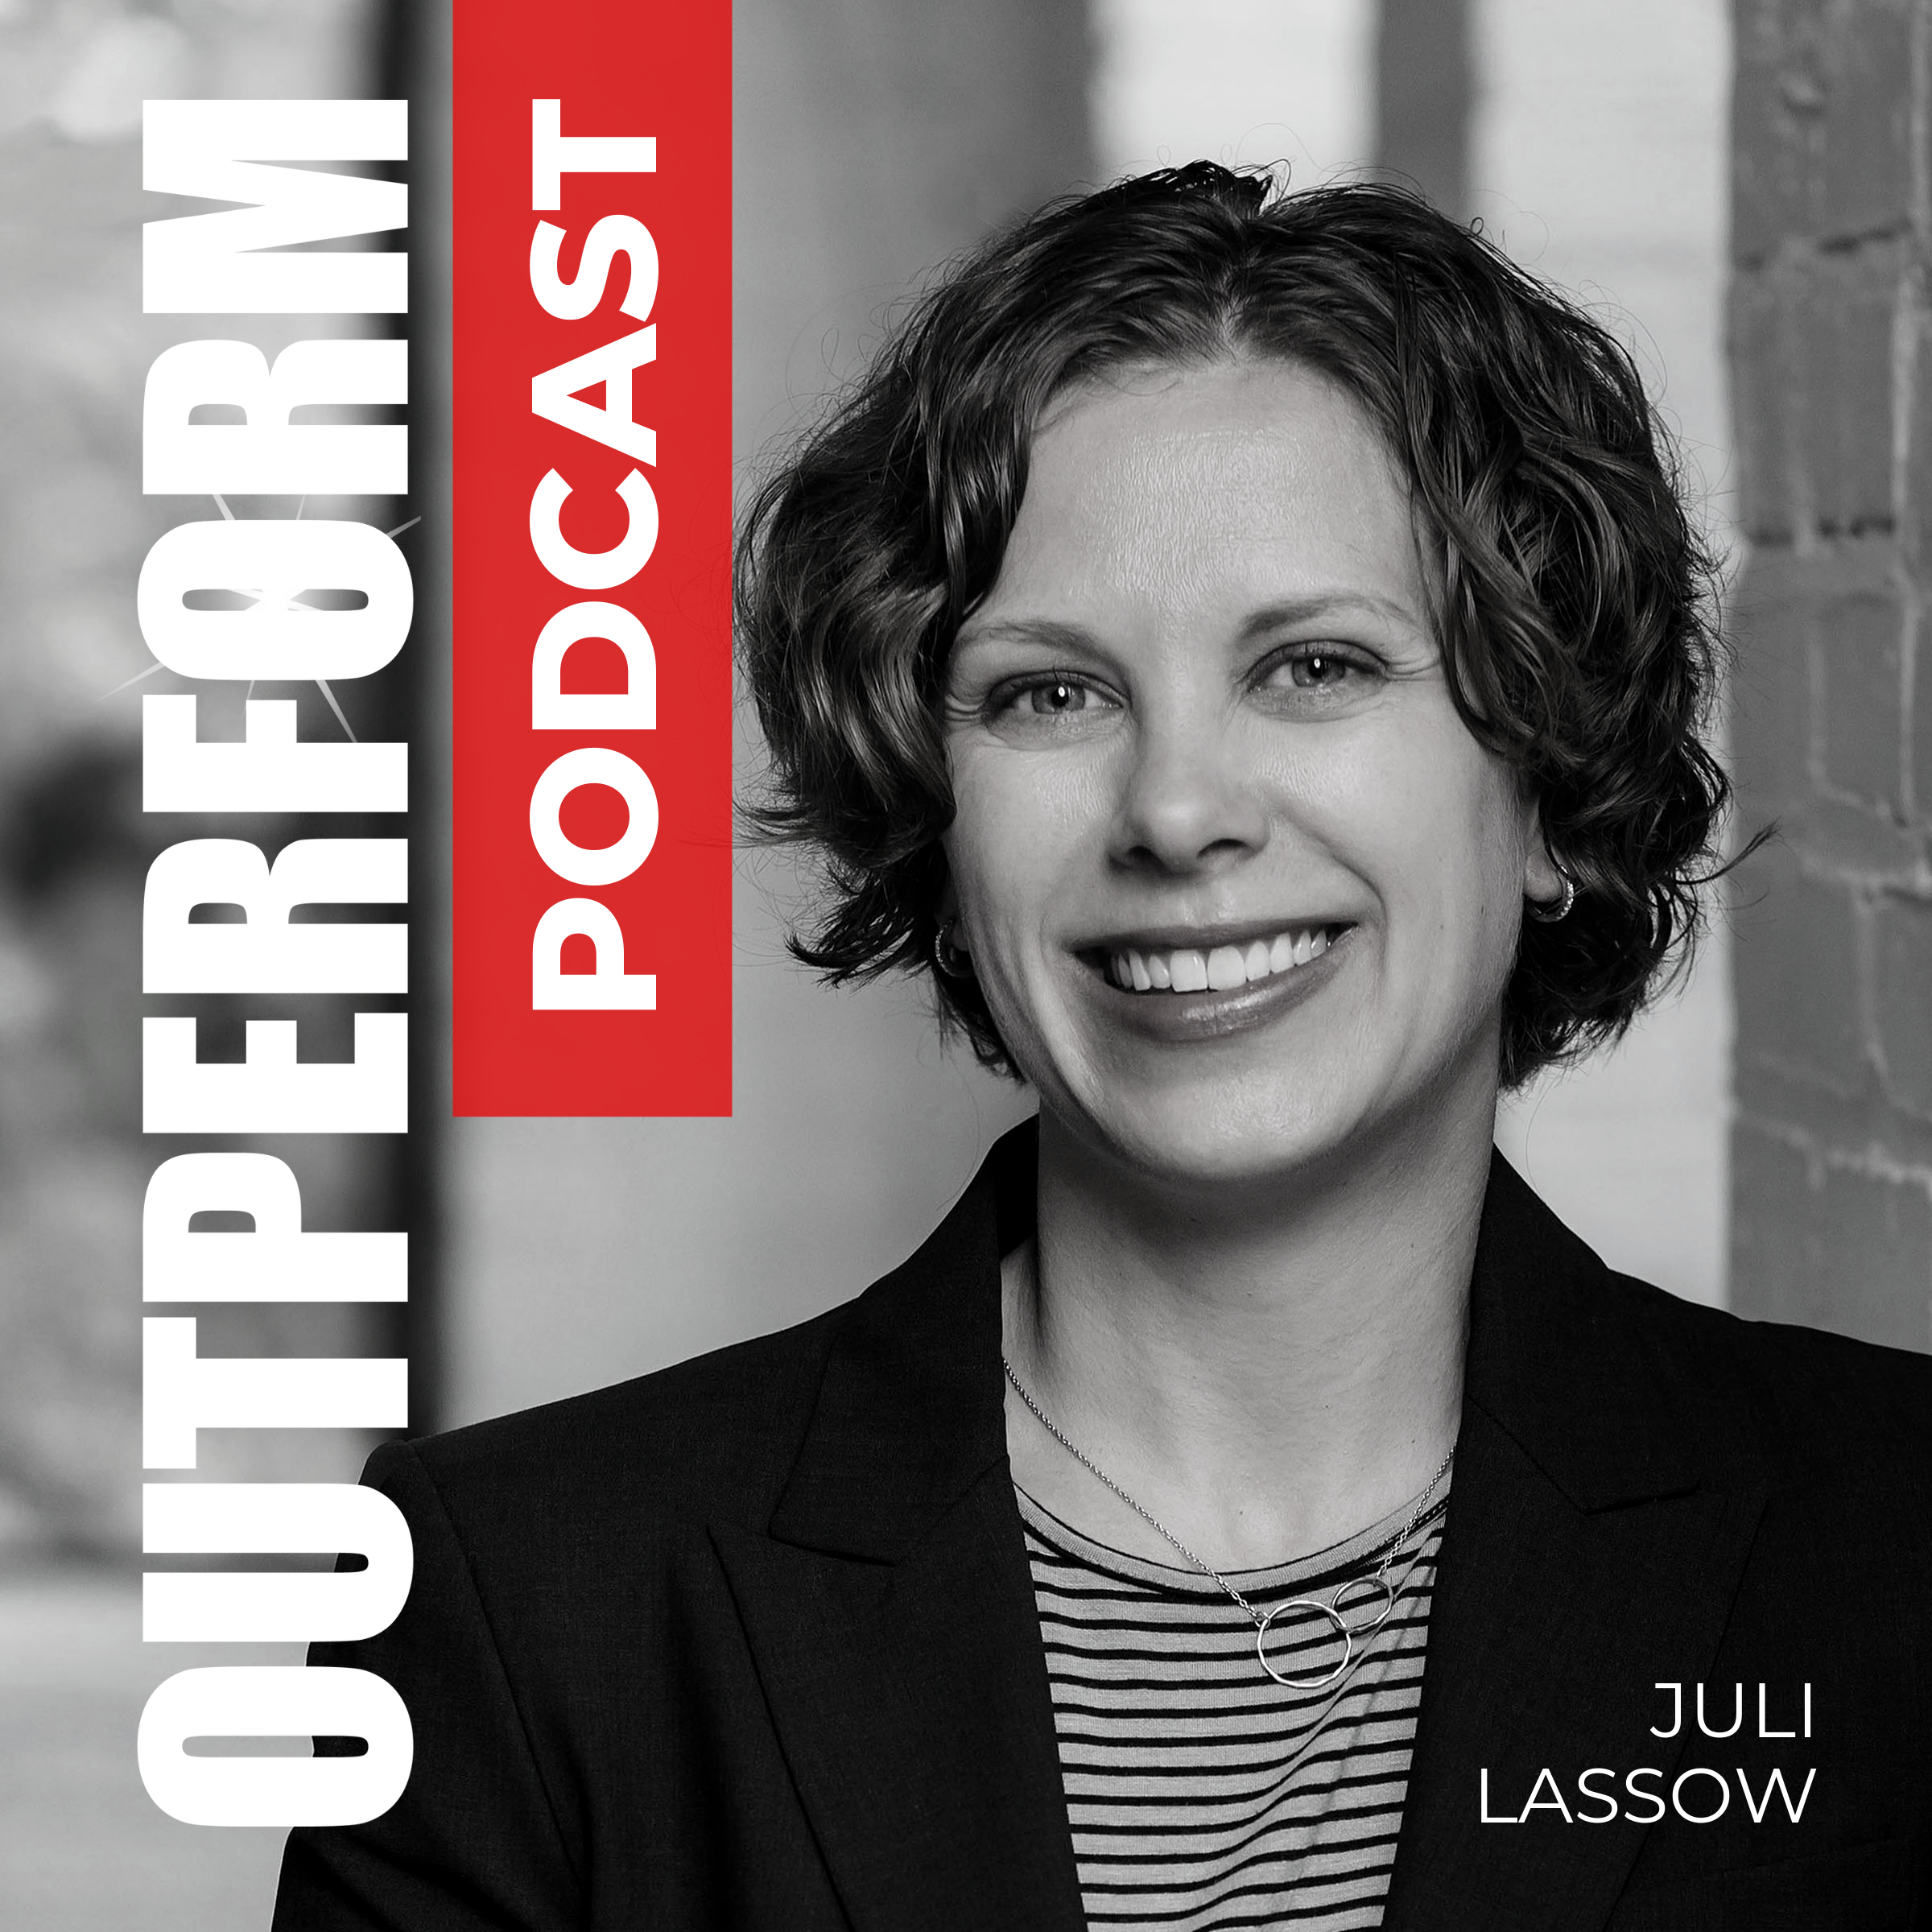 Juli Lassow: Developing a Growth Mindset